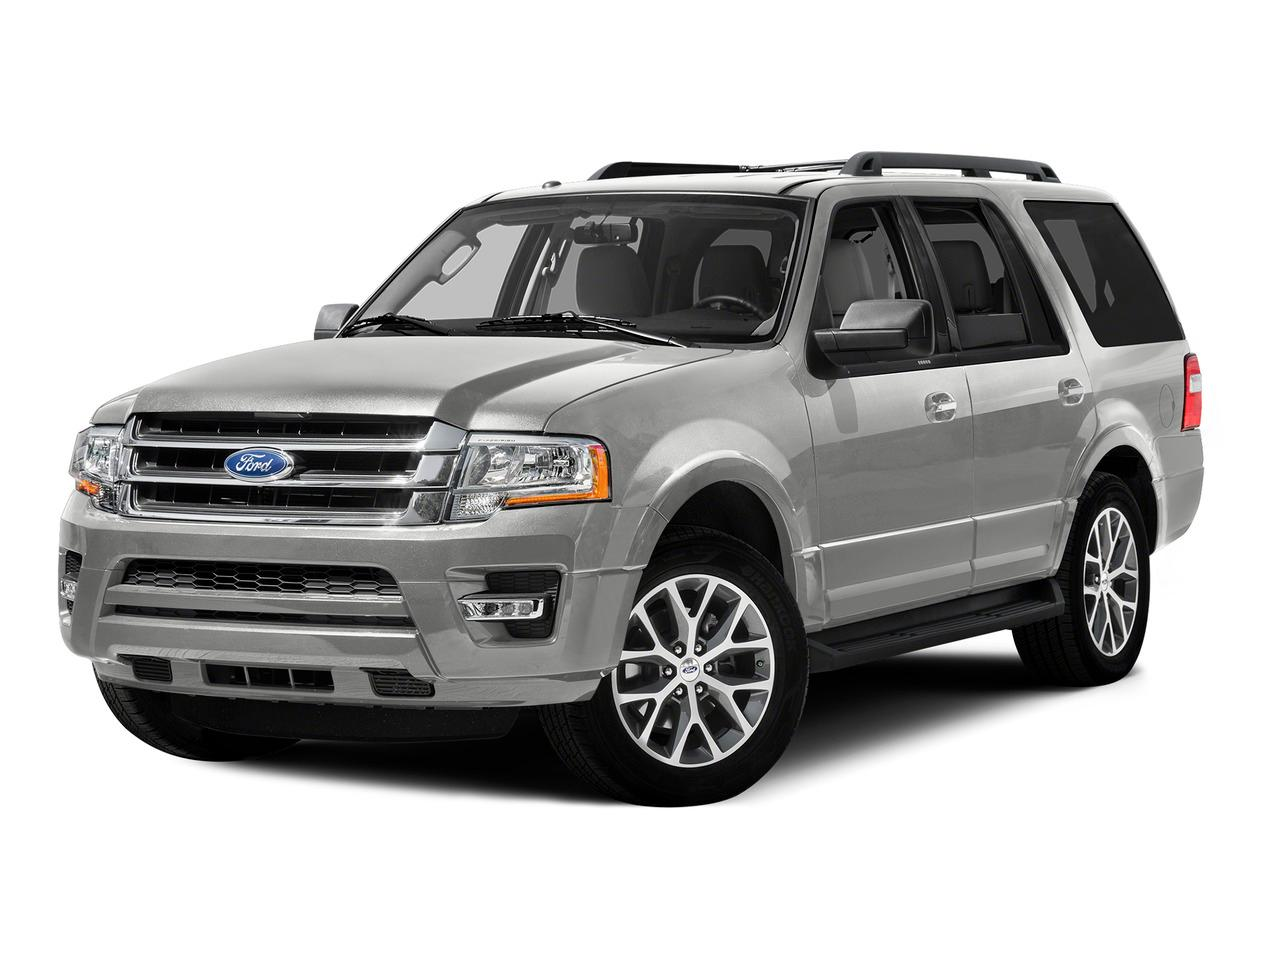 2015 Ford Expedition Vehicle Photo in GREENSBORO, NC 27407